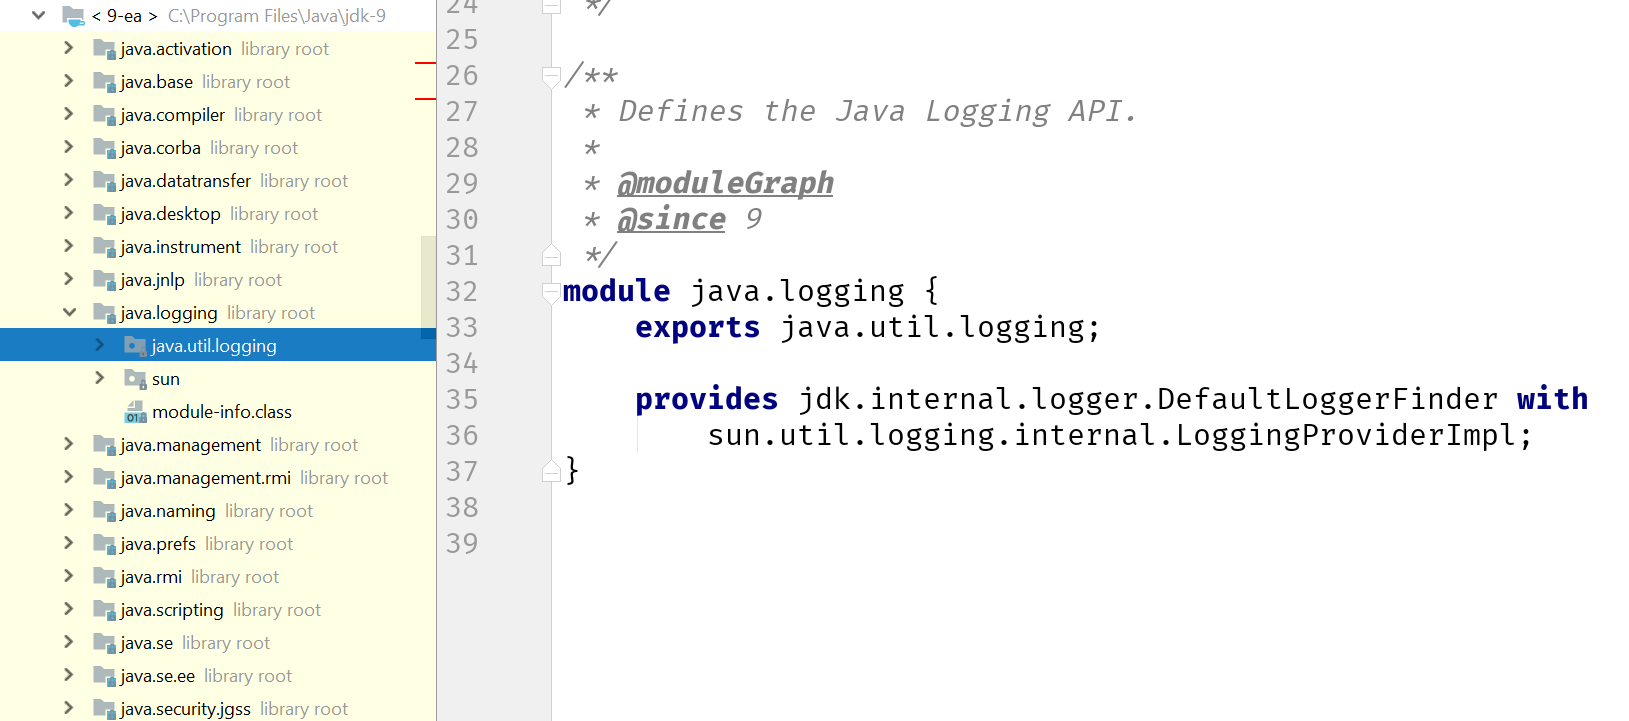 02-java-logging-module